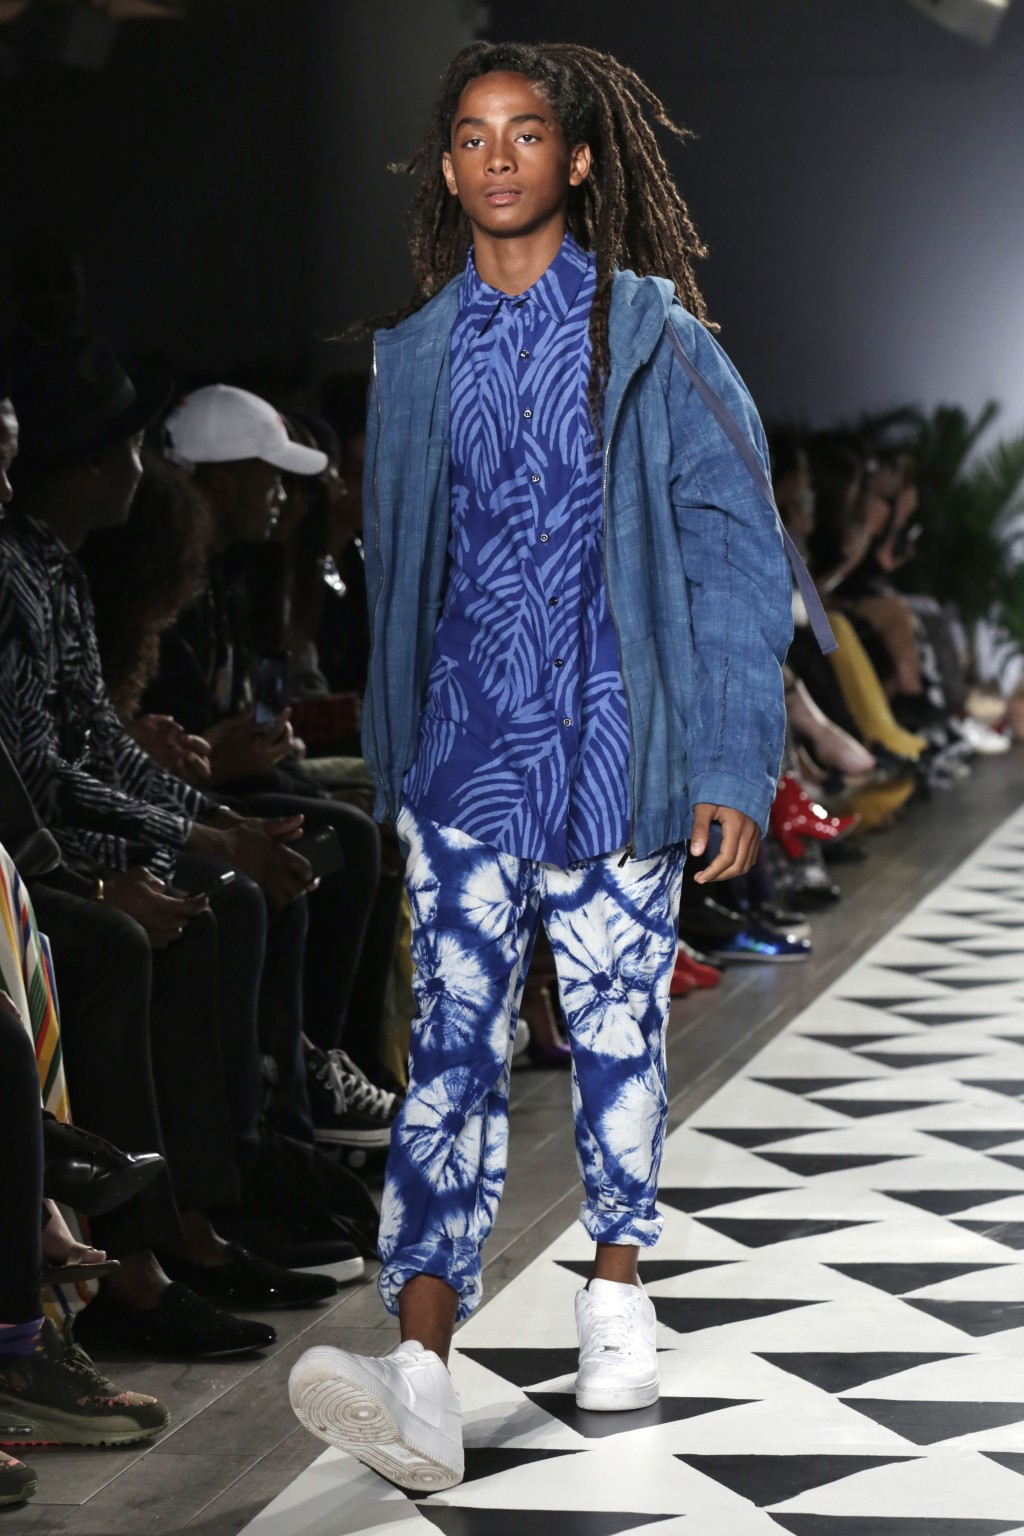 The Studio 189 spring 2019 collection is modeled during Fashion Week in New York, Monday, Sept. 10, 2018. (AP Photo/Richard Drew)